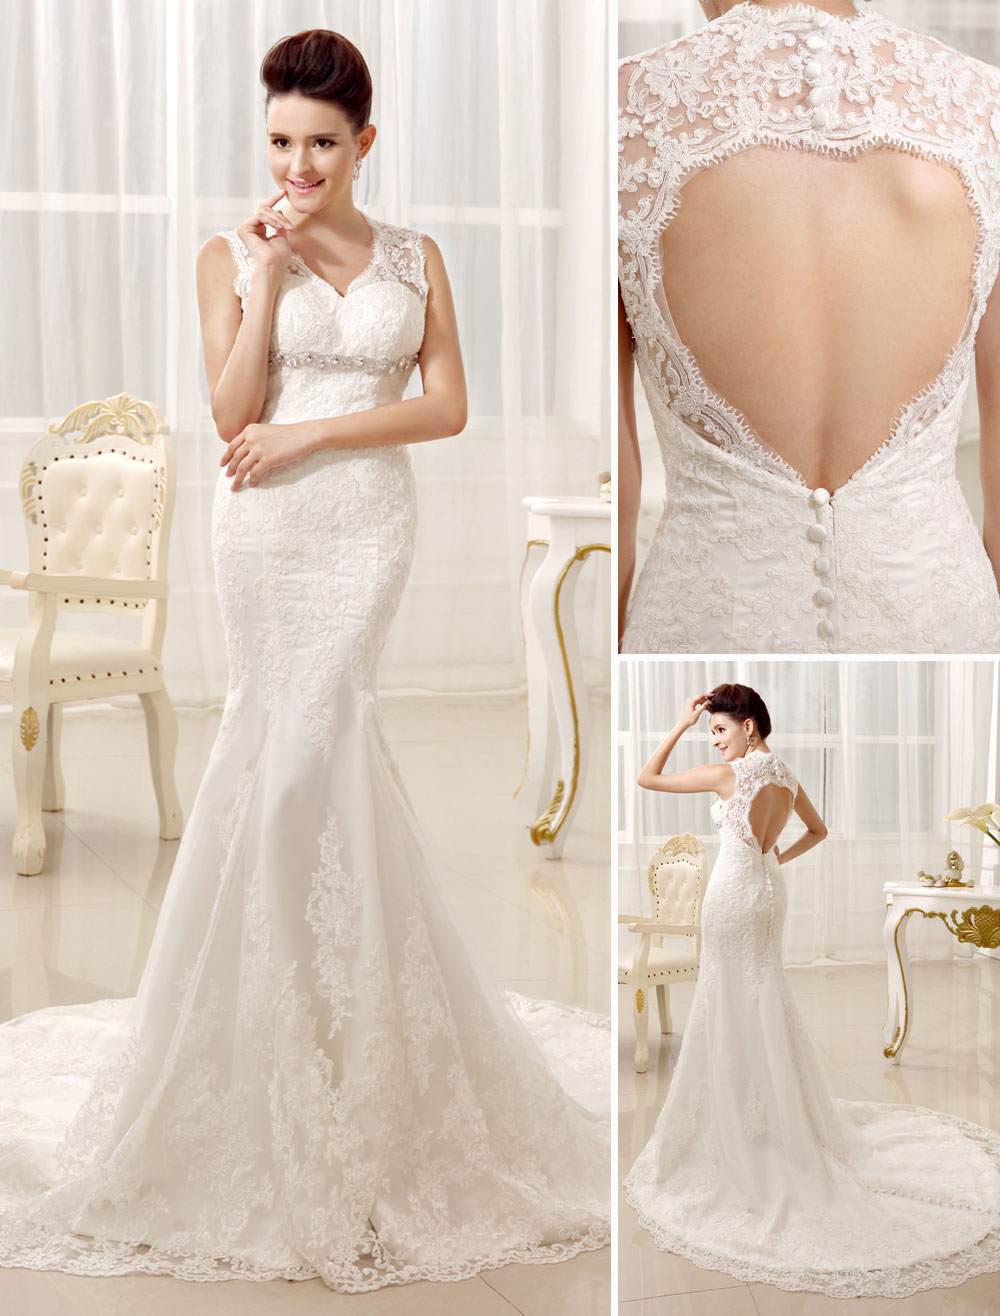 Mermaid Beaded Halter Lace Elegant Bridal Wedding Gown